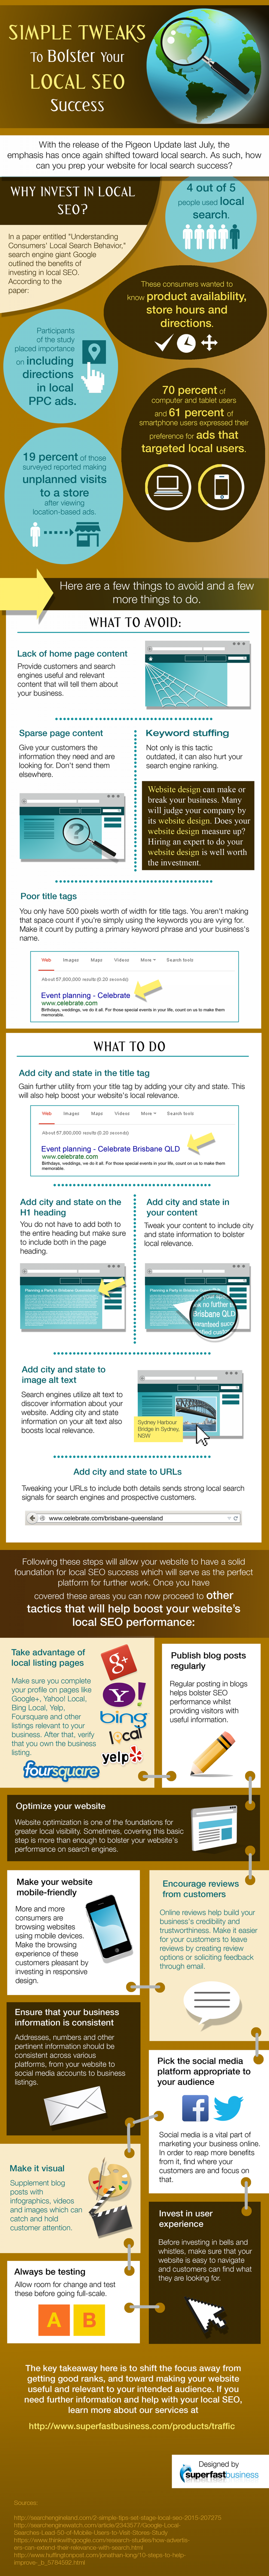 Simple Tweaks To Bolster Your Local SEO Success Infographic